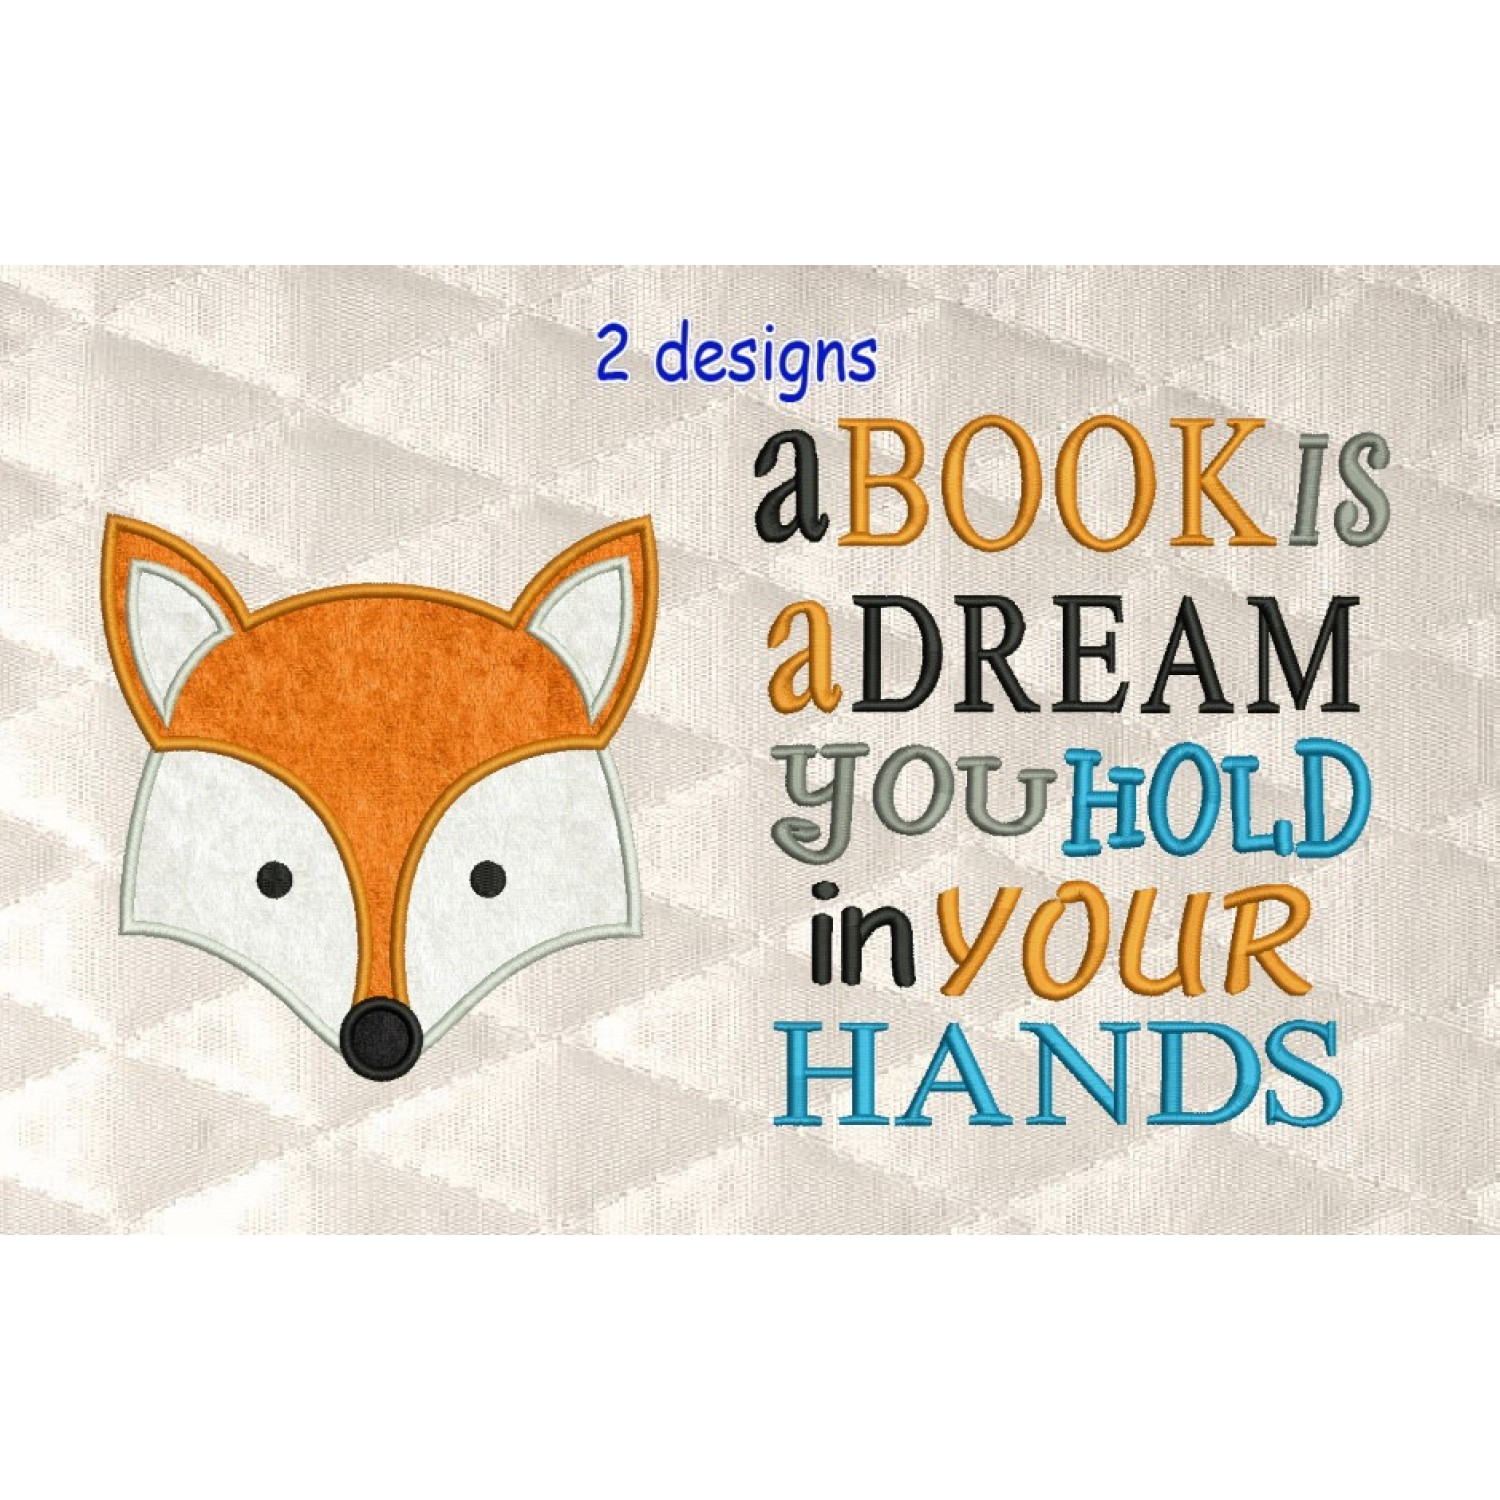 Fox face with a book is a dream